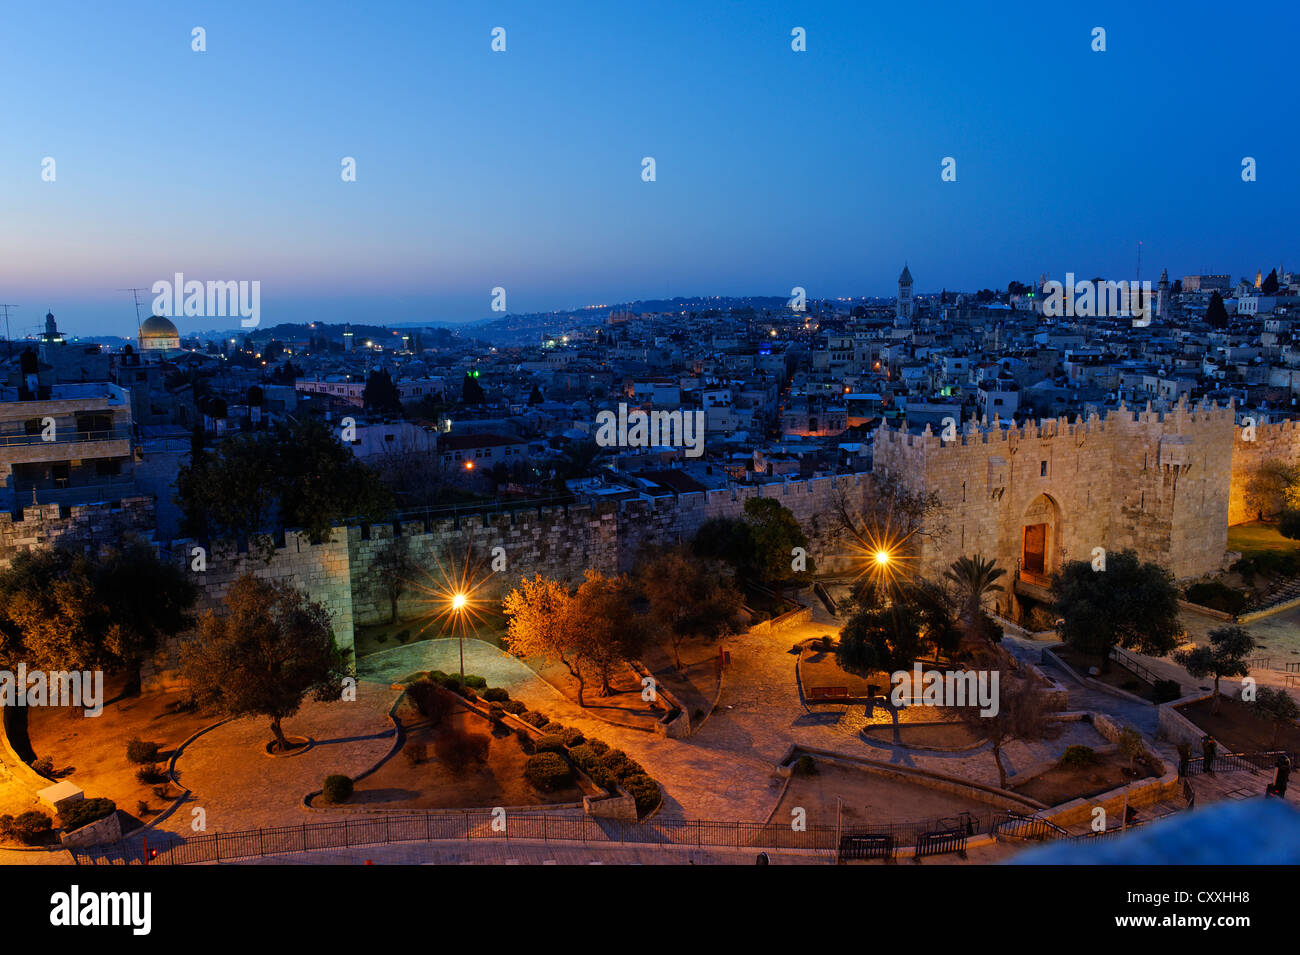 Damascus Gate with city walls, dusk, Old City, Jerusalem, from Paulus guest house, Israel, Middle East Stock Photo